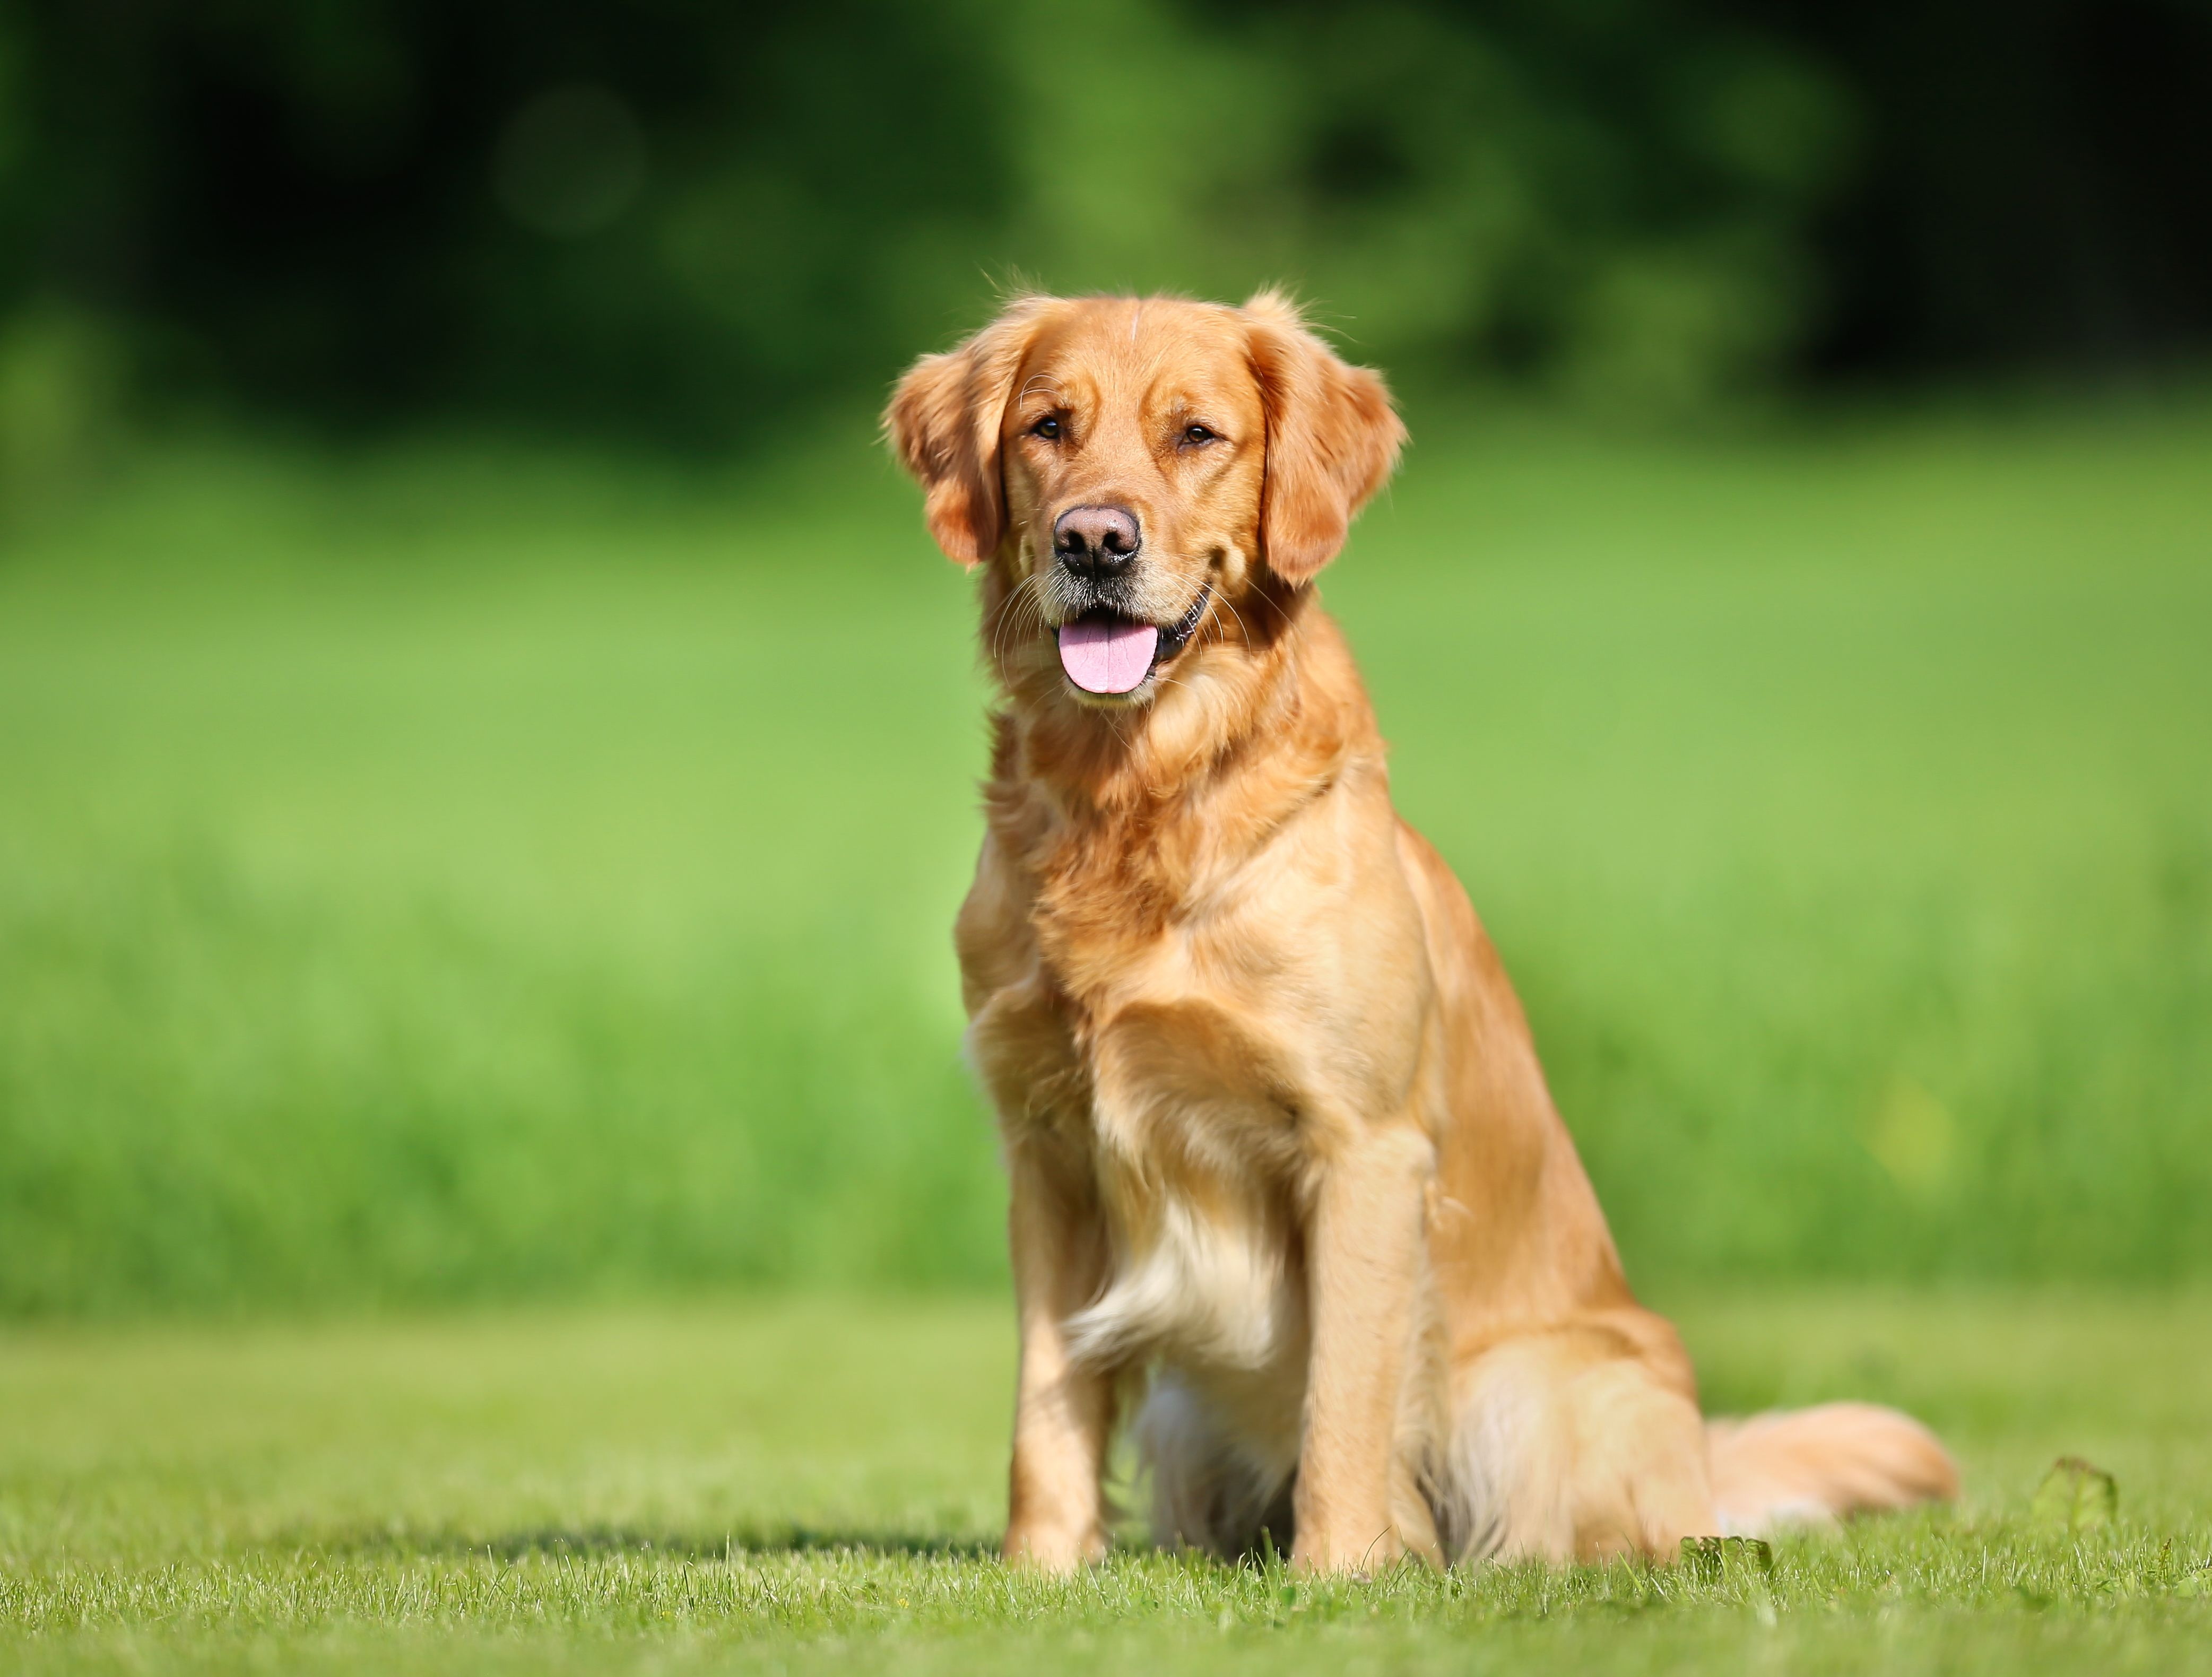 Dog Photo Golden Retriever